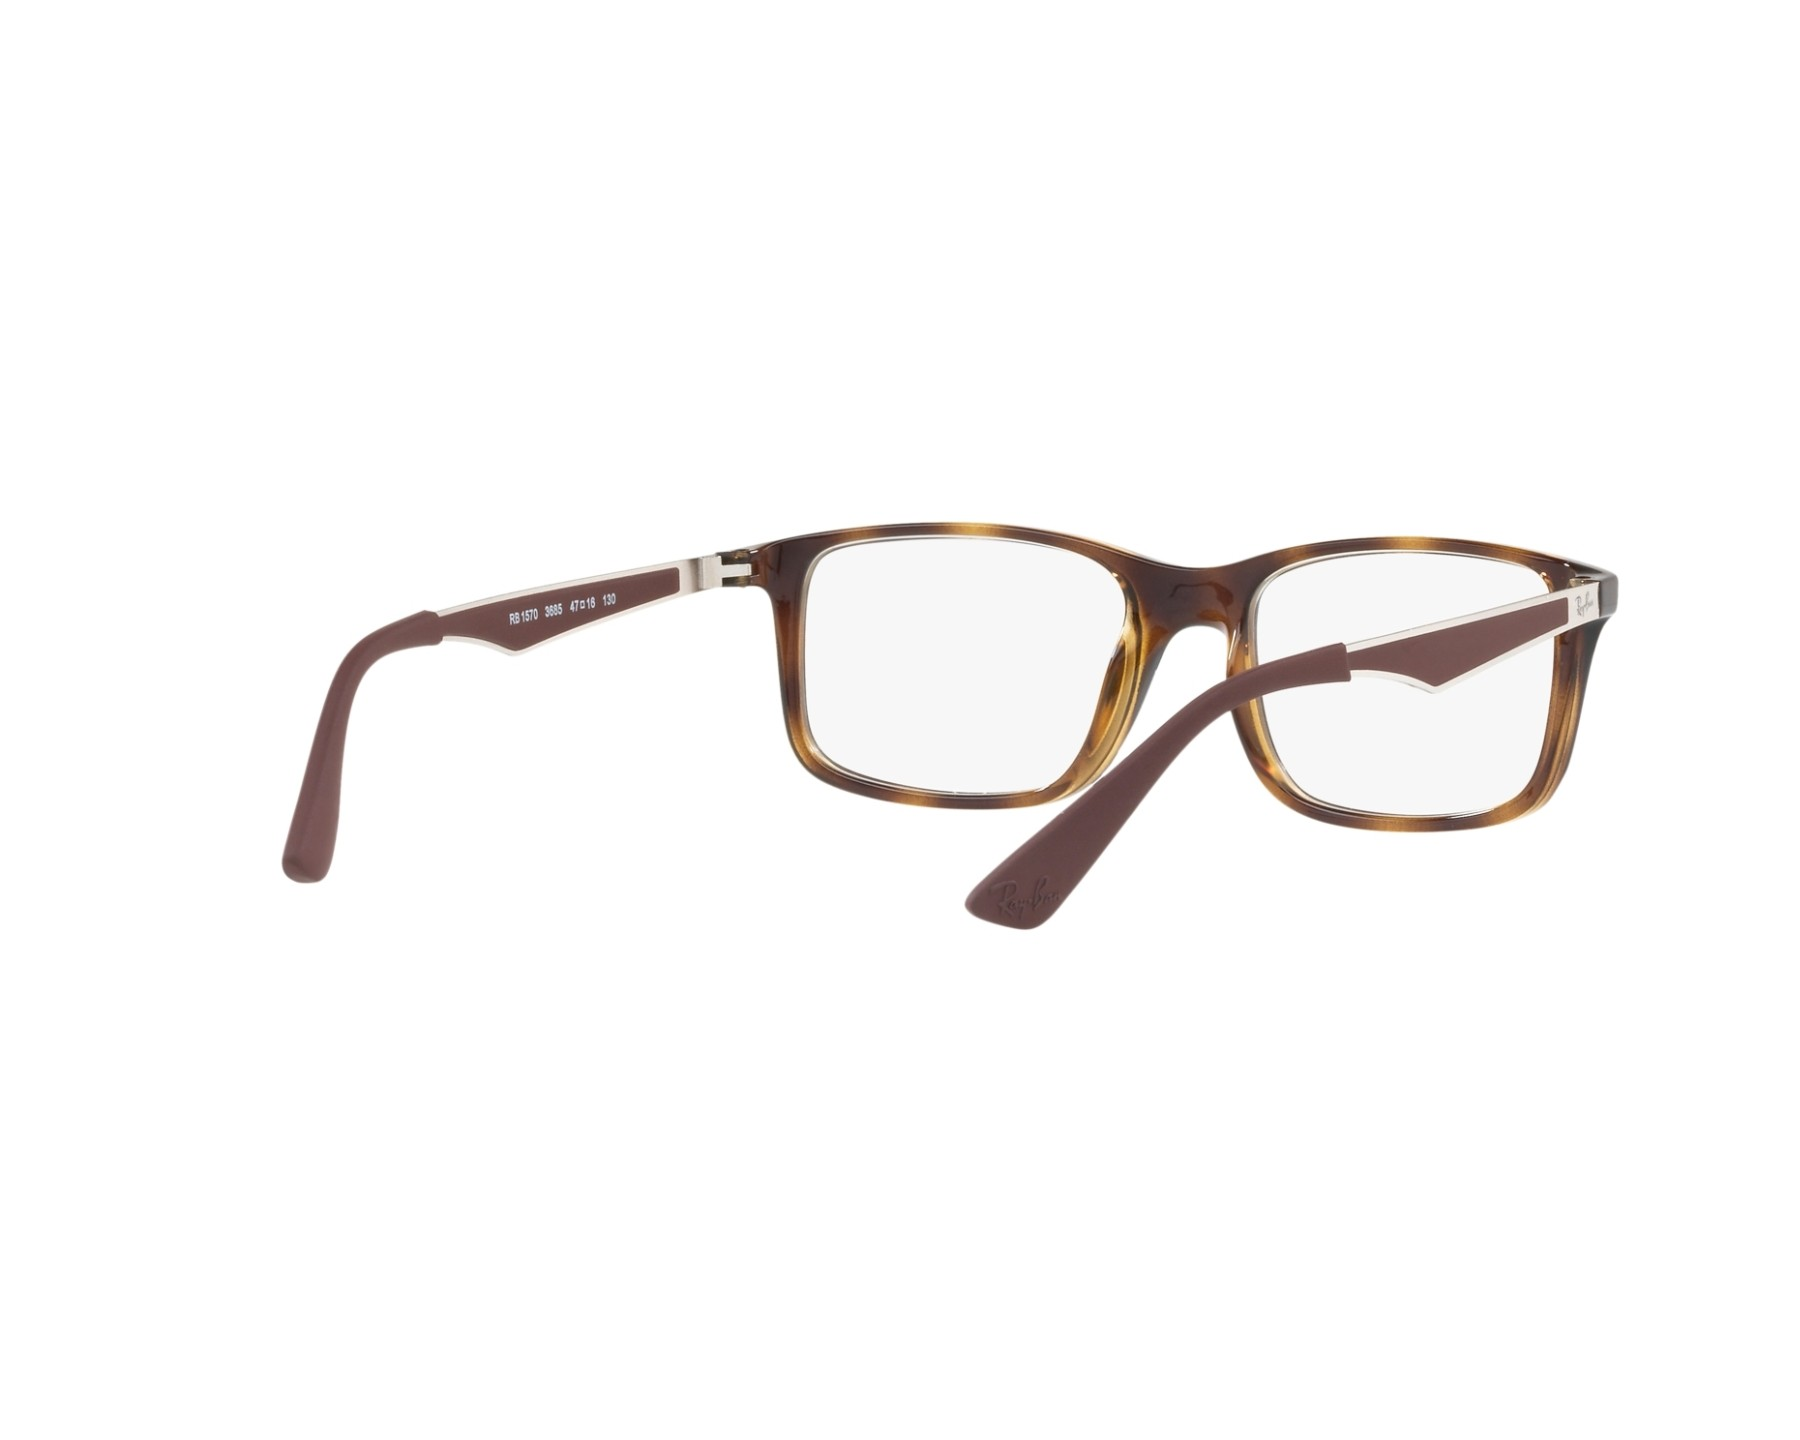 eyeglasses Ray-Ban RY-1570 3685 49-16 Brown Gun 360 degree view a50e32809829